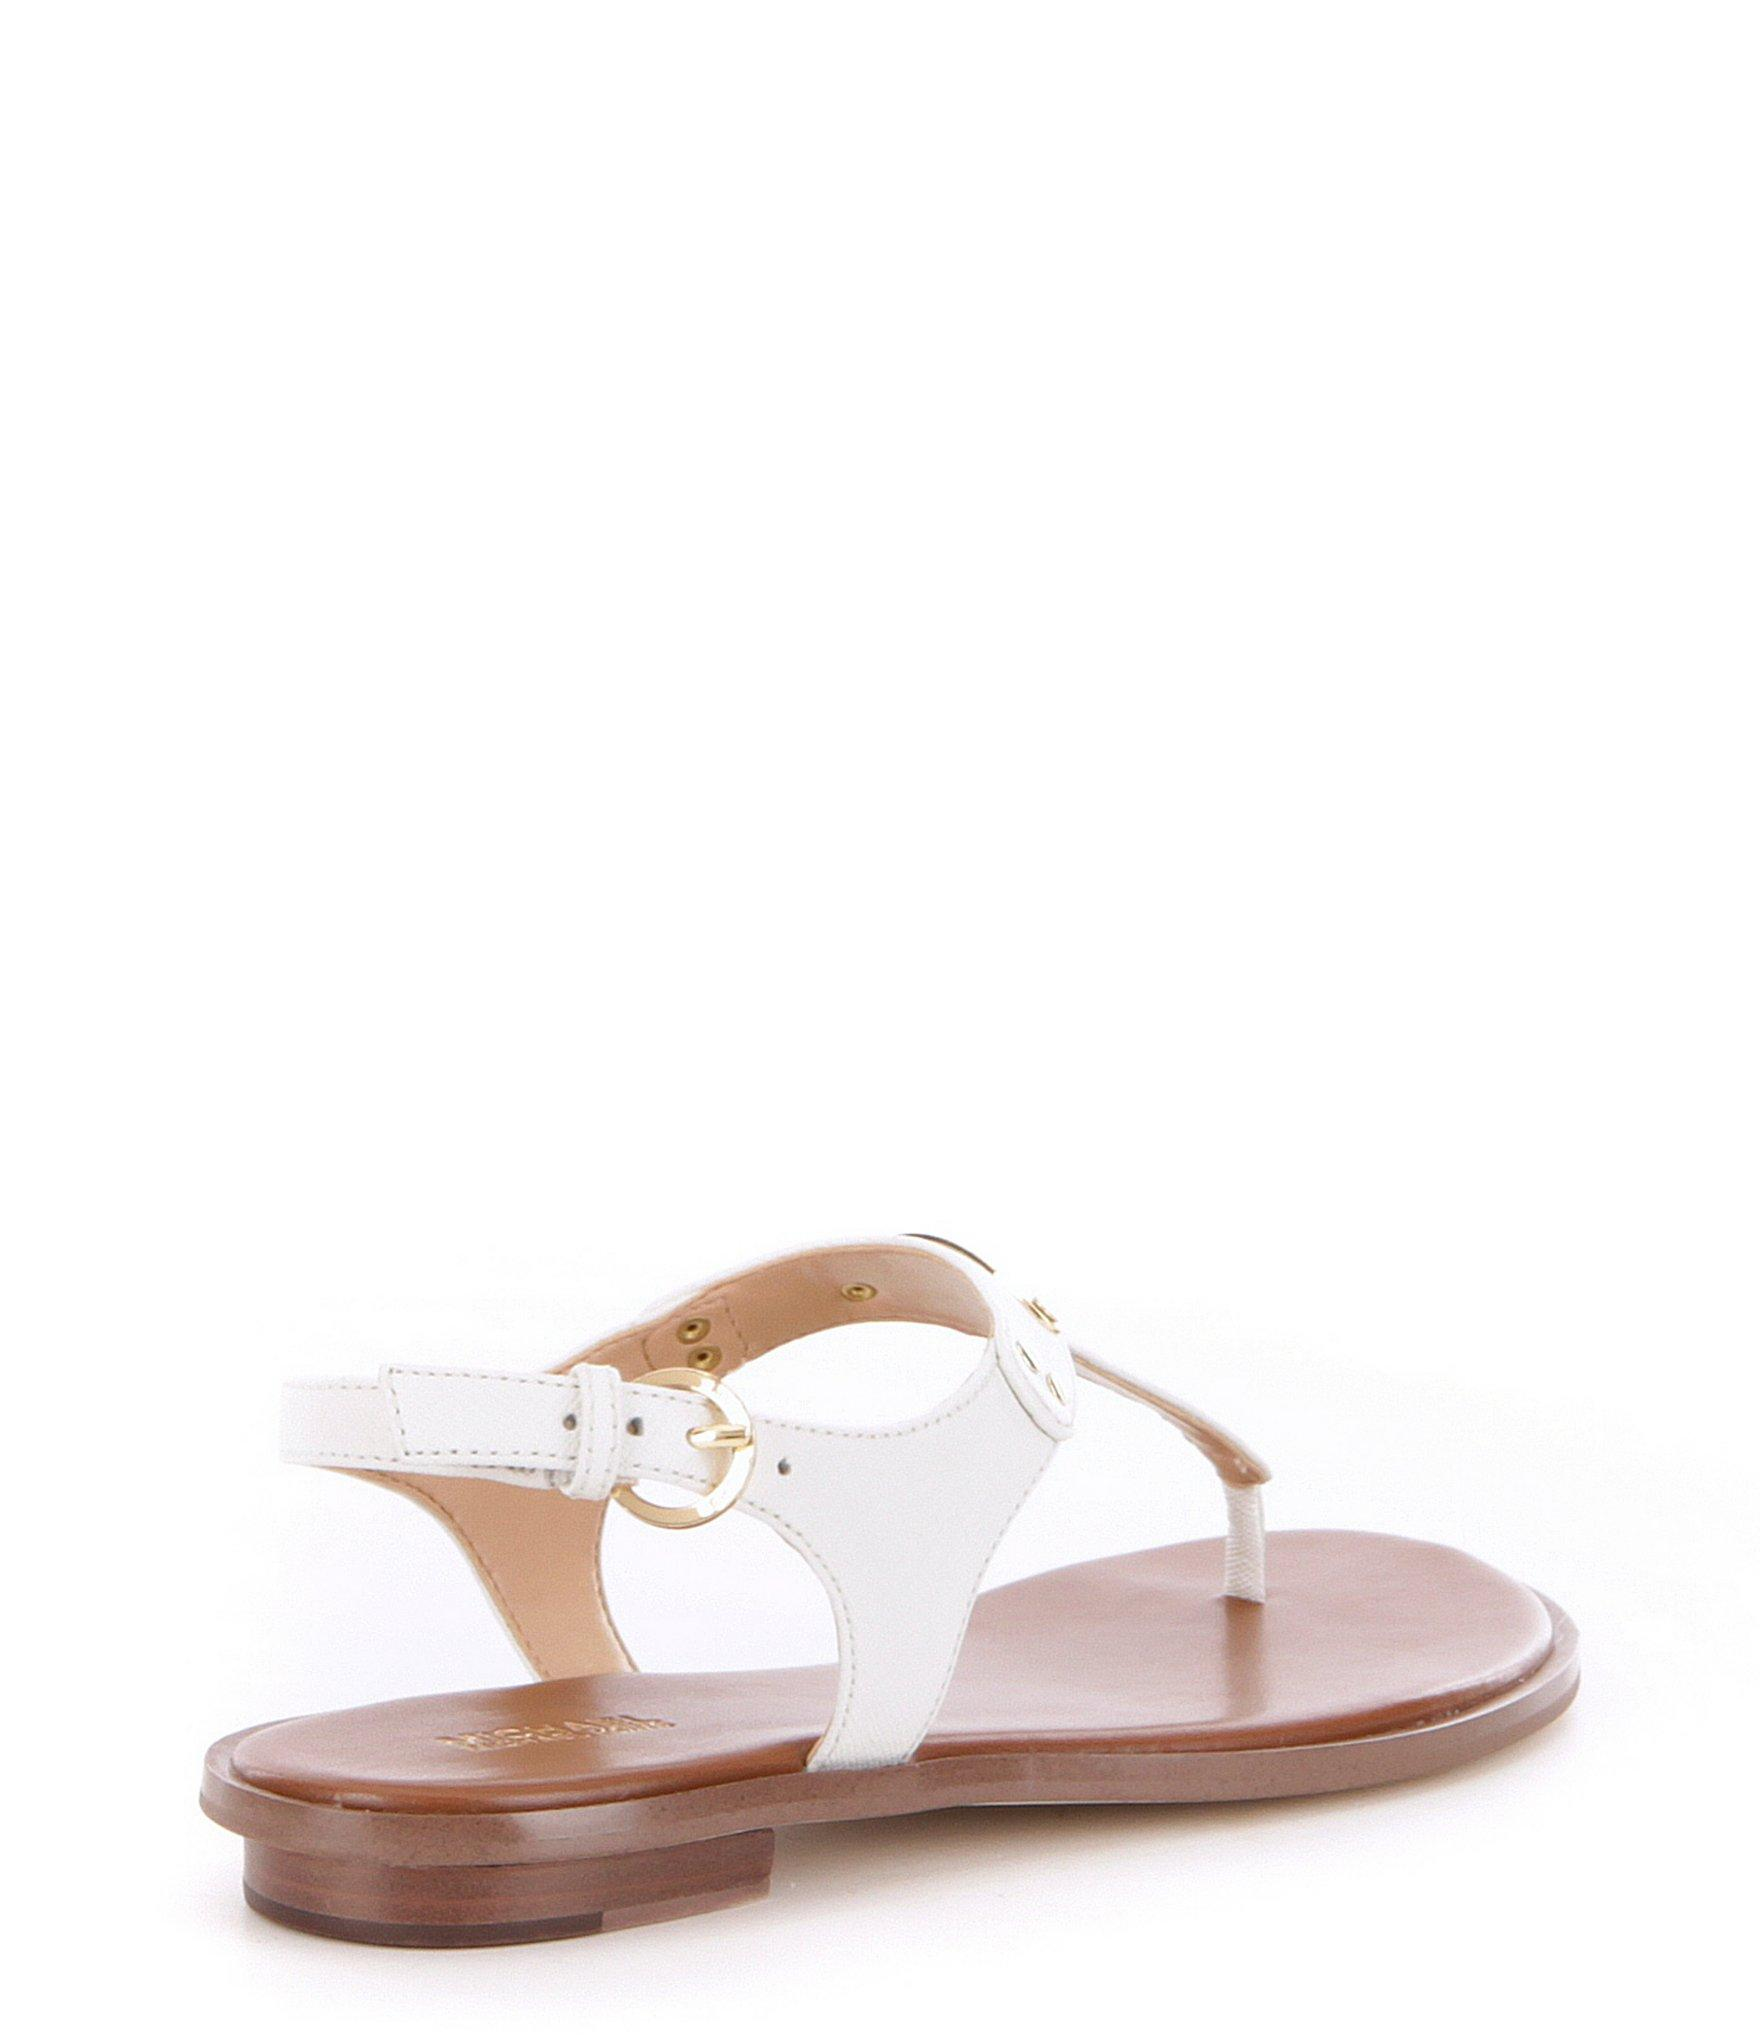 f63cac5f7 MICHAEL Michael Kors - White Mk Plate Saffiano Leather Thong Sandals -  Lyst. View fullscreen